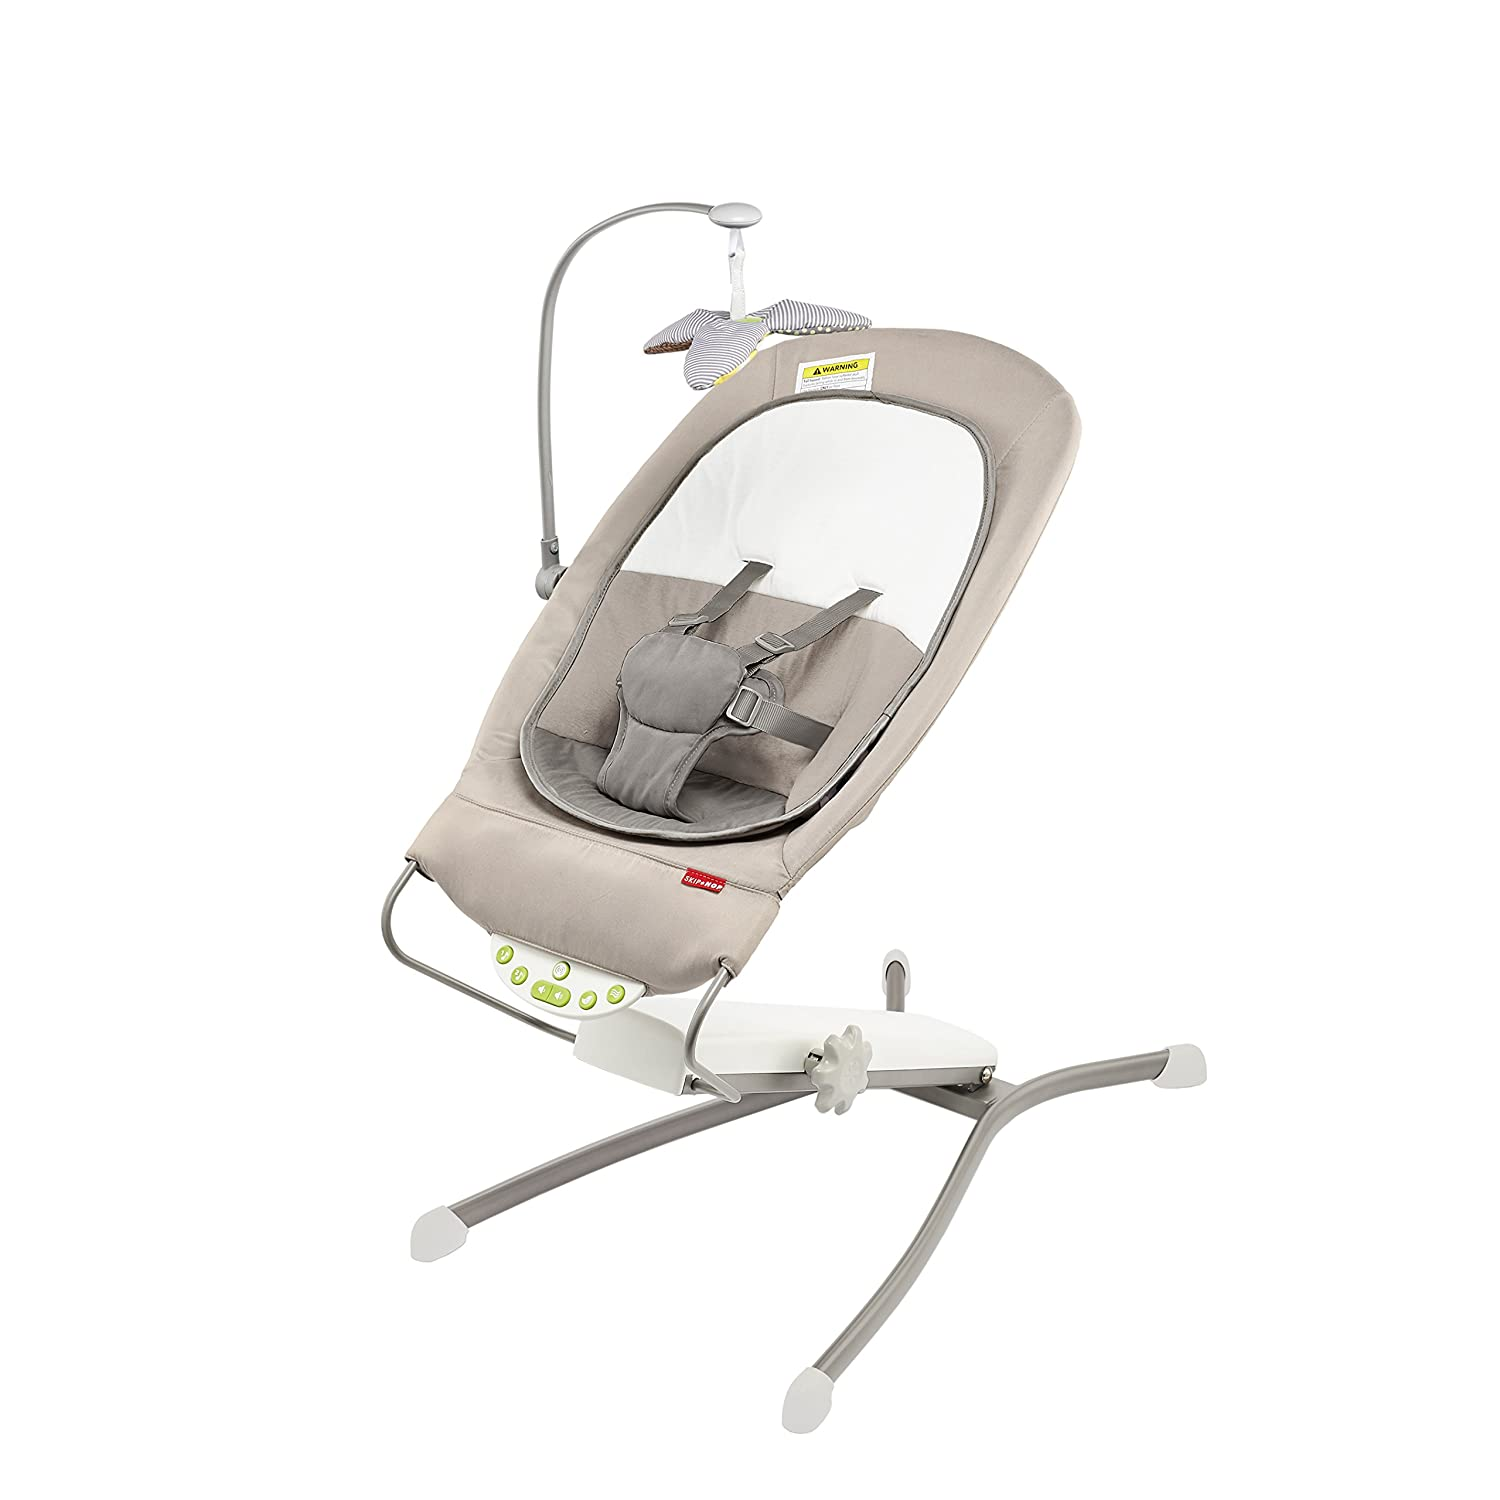 Skip Hop Uplift Multi-Level Adjustable Bouncer, Grey 304001-CNSZP